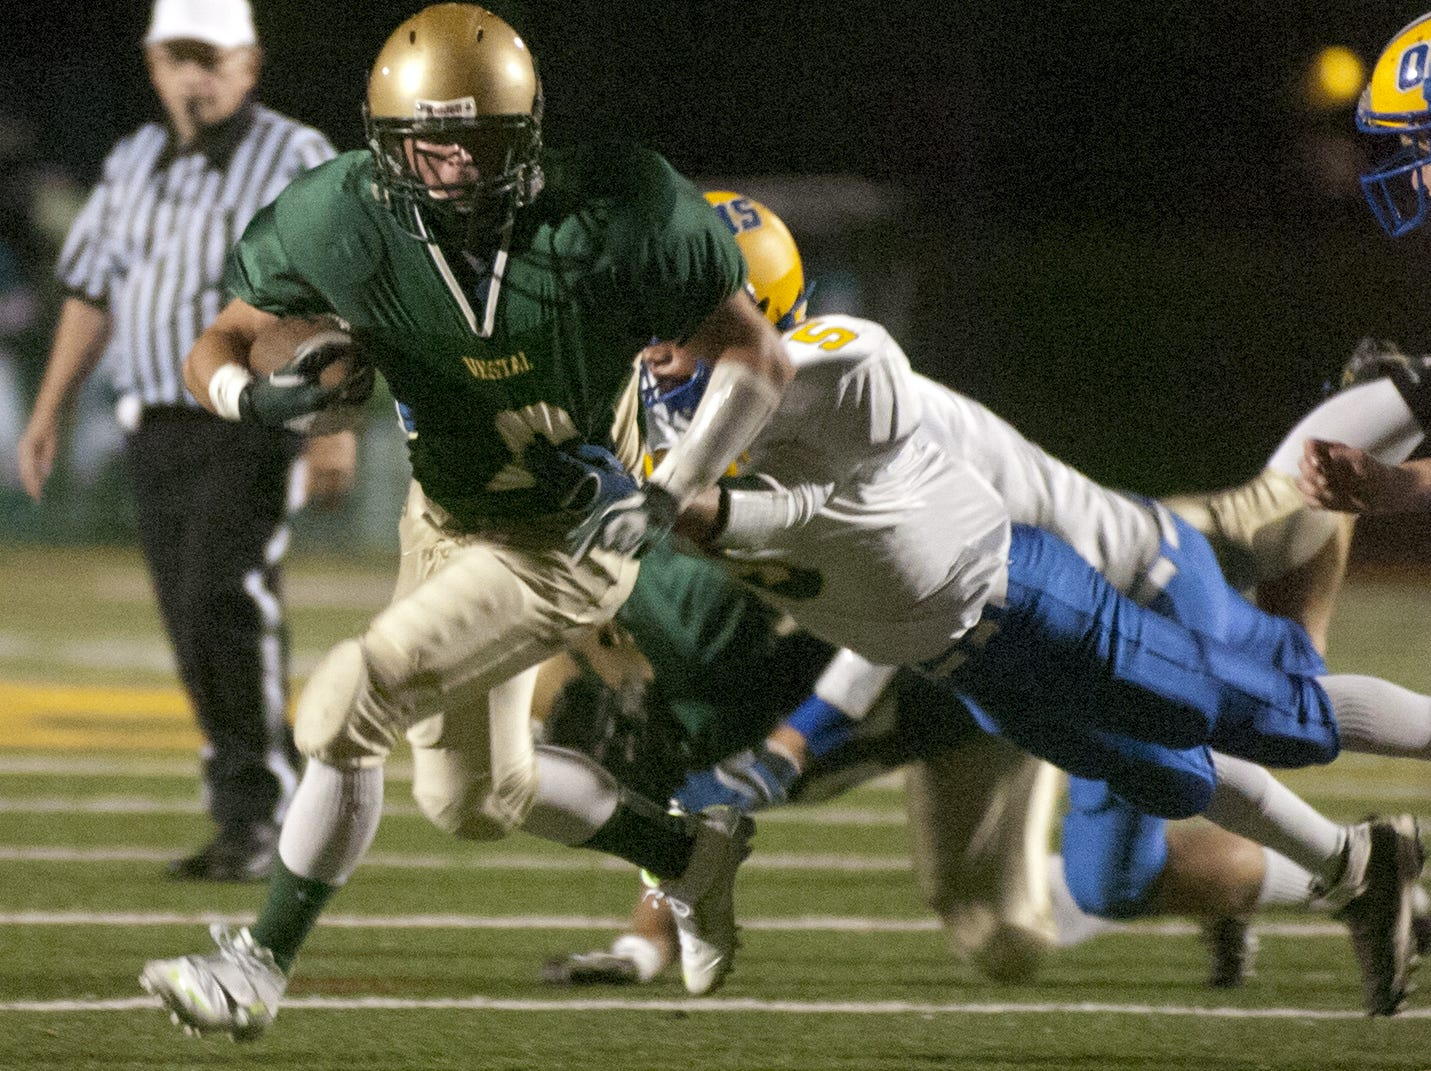 In 2012, Oneonta's Jonathan Vega tries to tackle Vestal's Marshall Case in the first half.